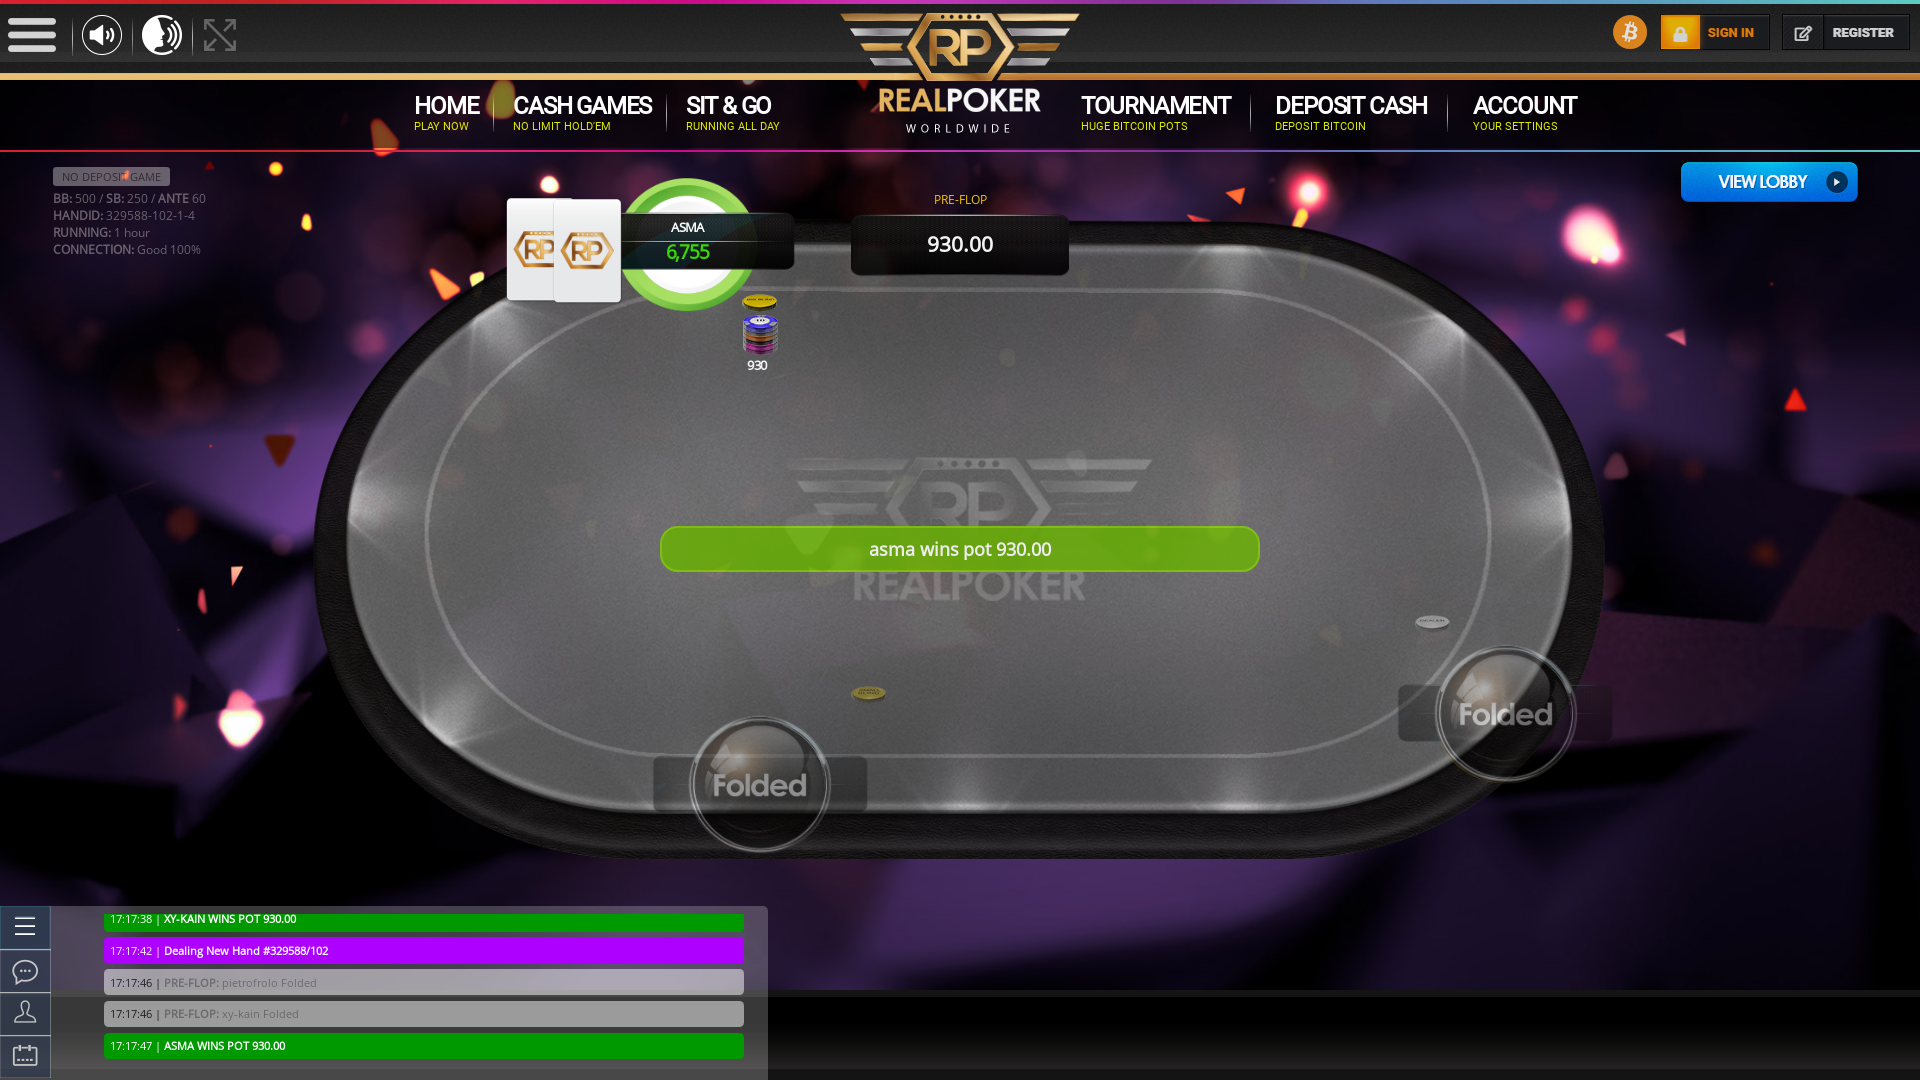 Online poker on a 10 player table in the 69th minute match up